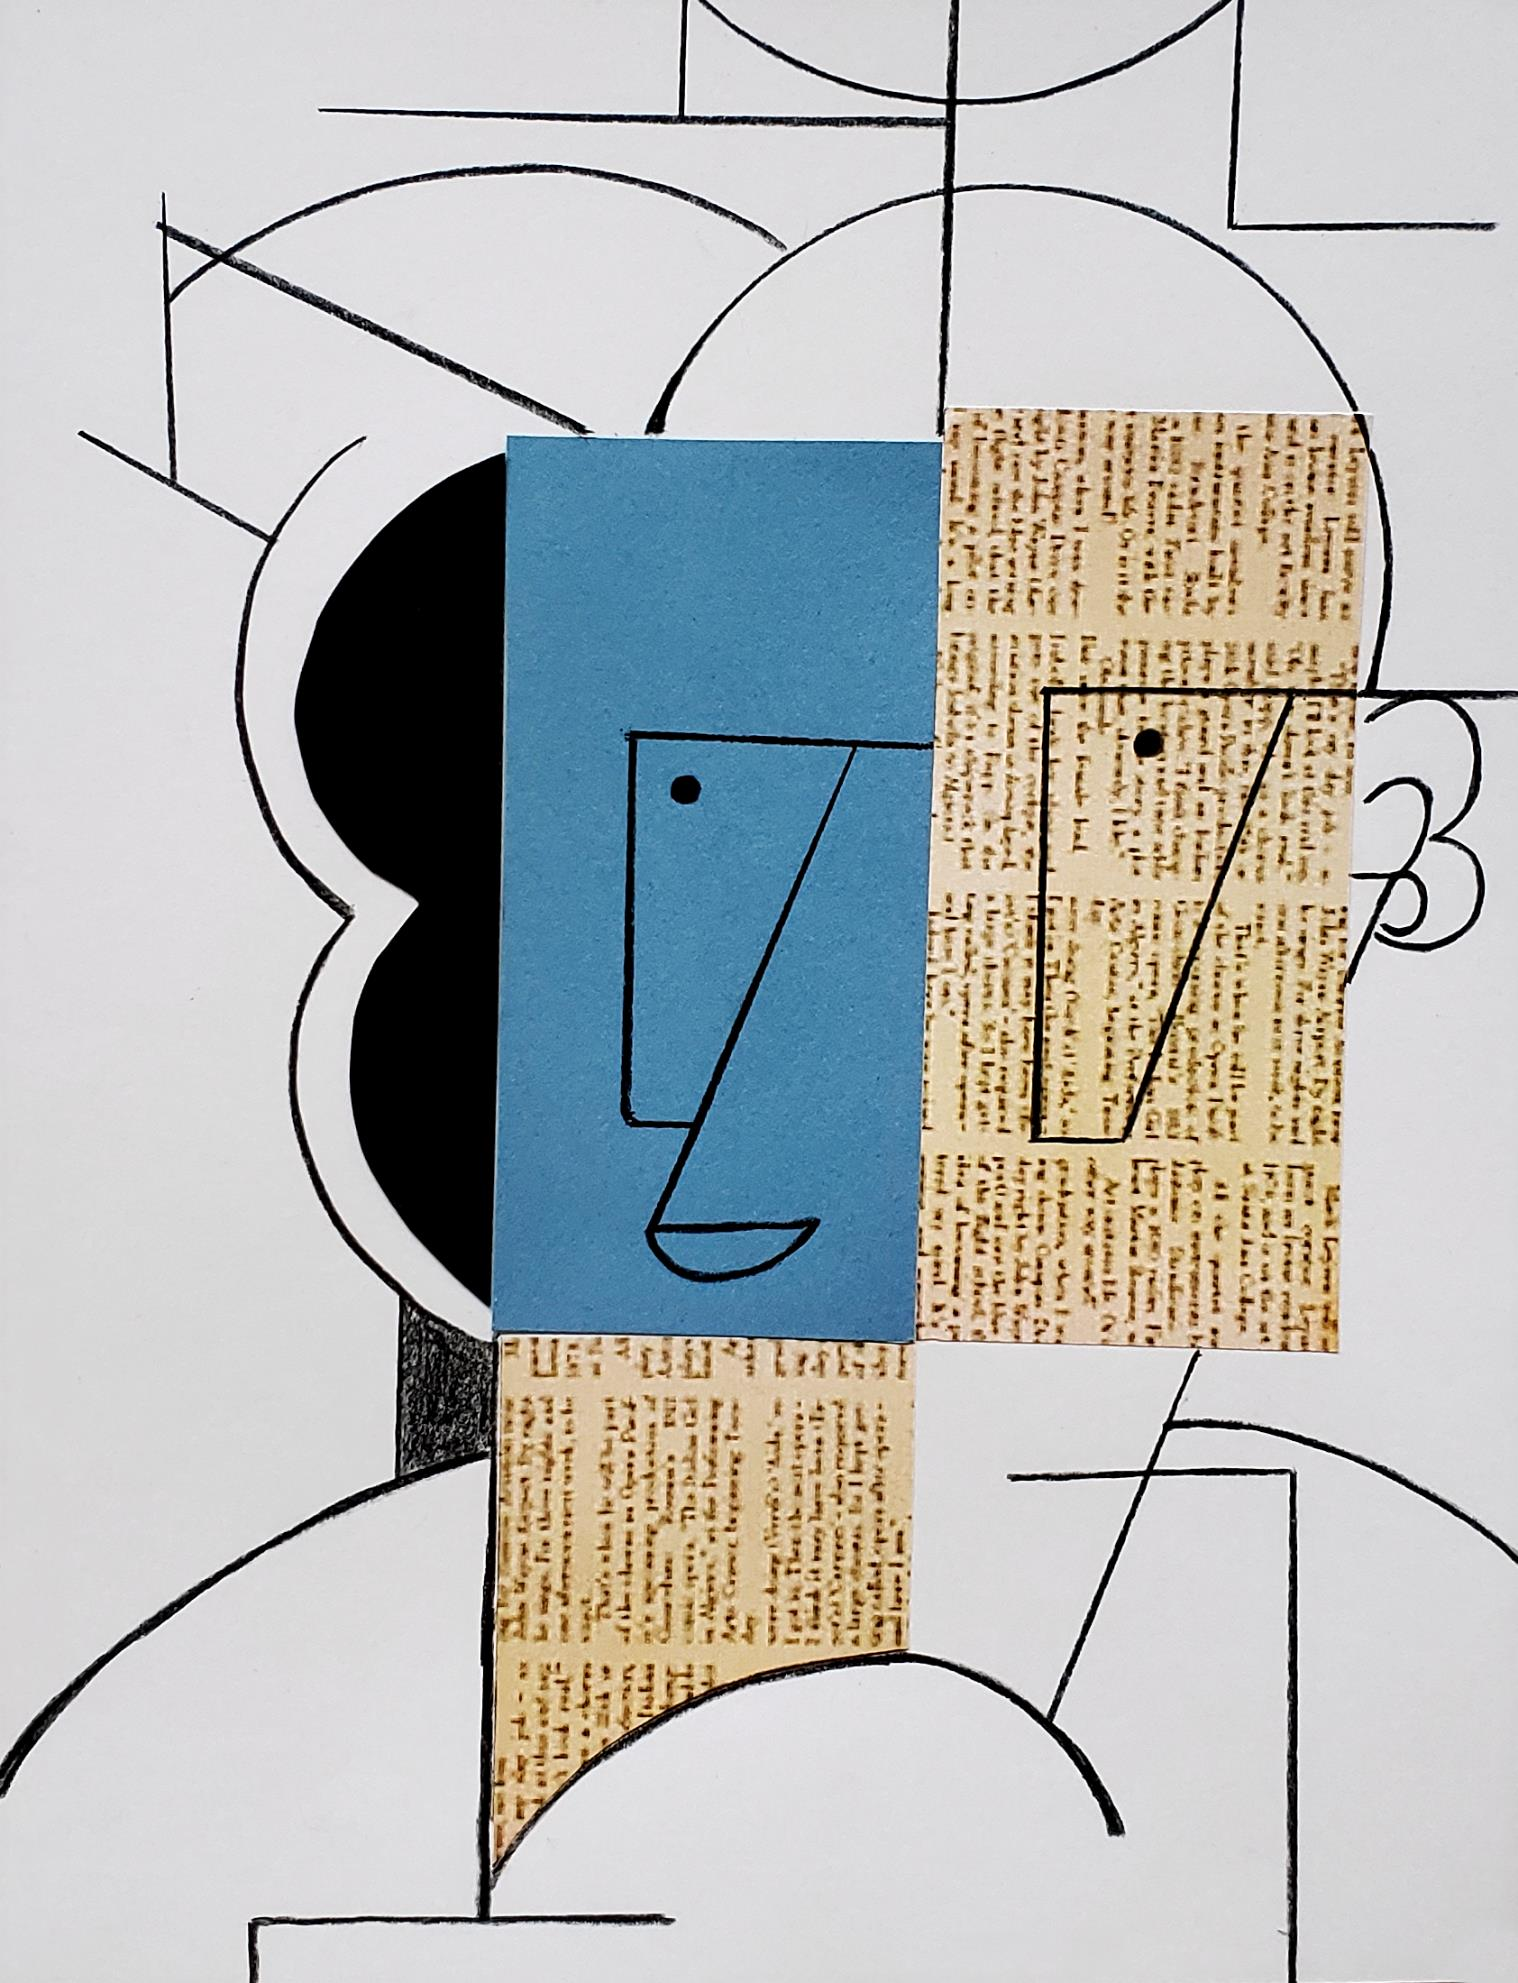 Finished Picasso Abstract Art Project for Kids